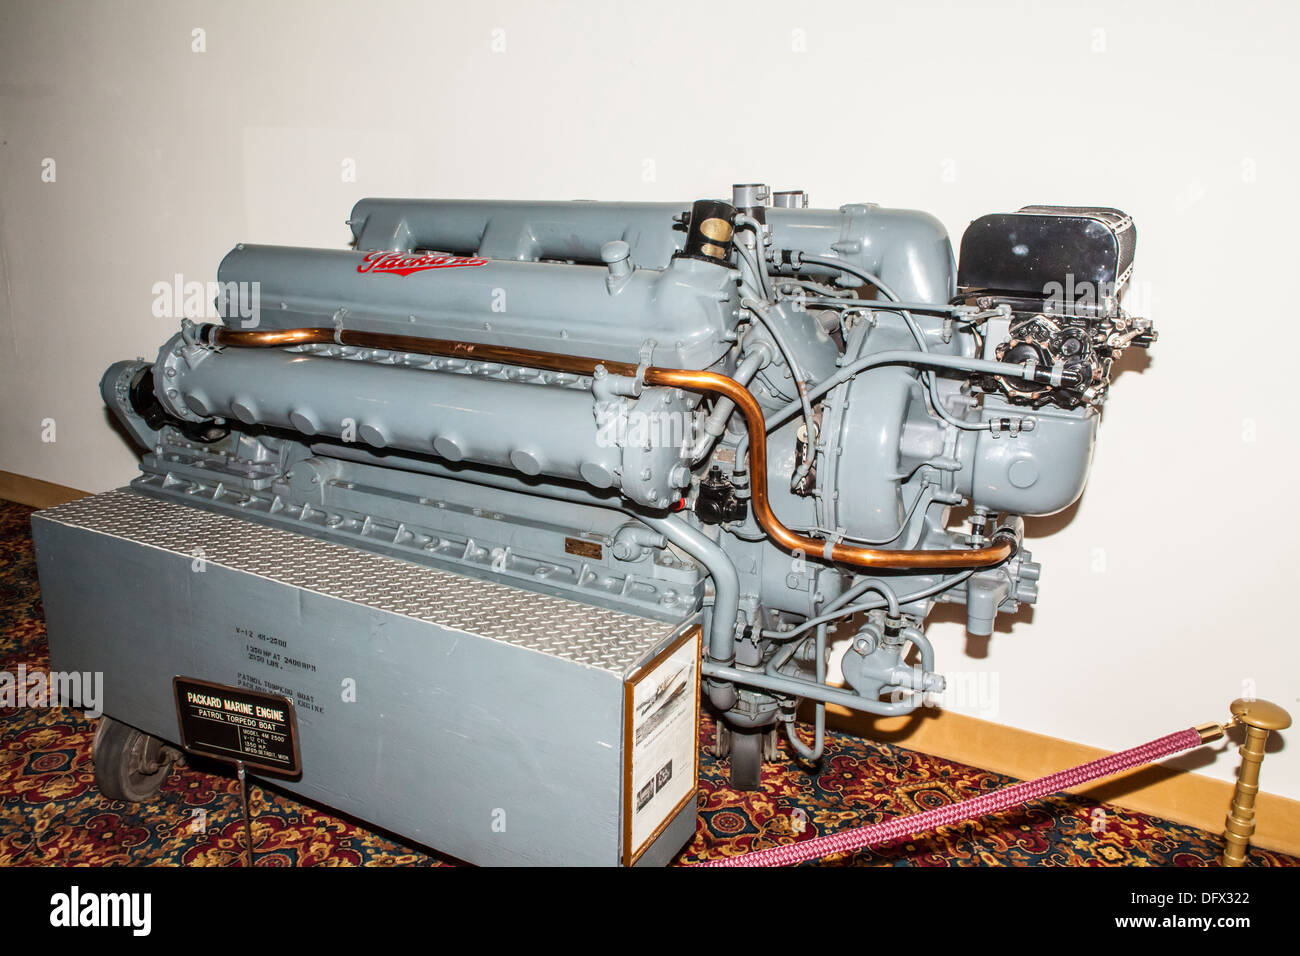 a packard 12 cylinder marine engine of the type used in pt boats in stock photo royalty free